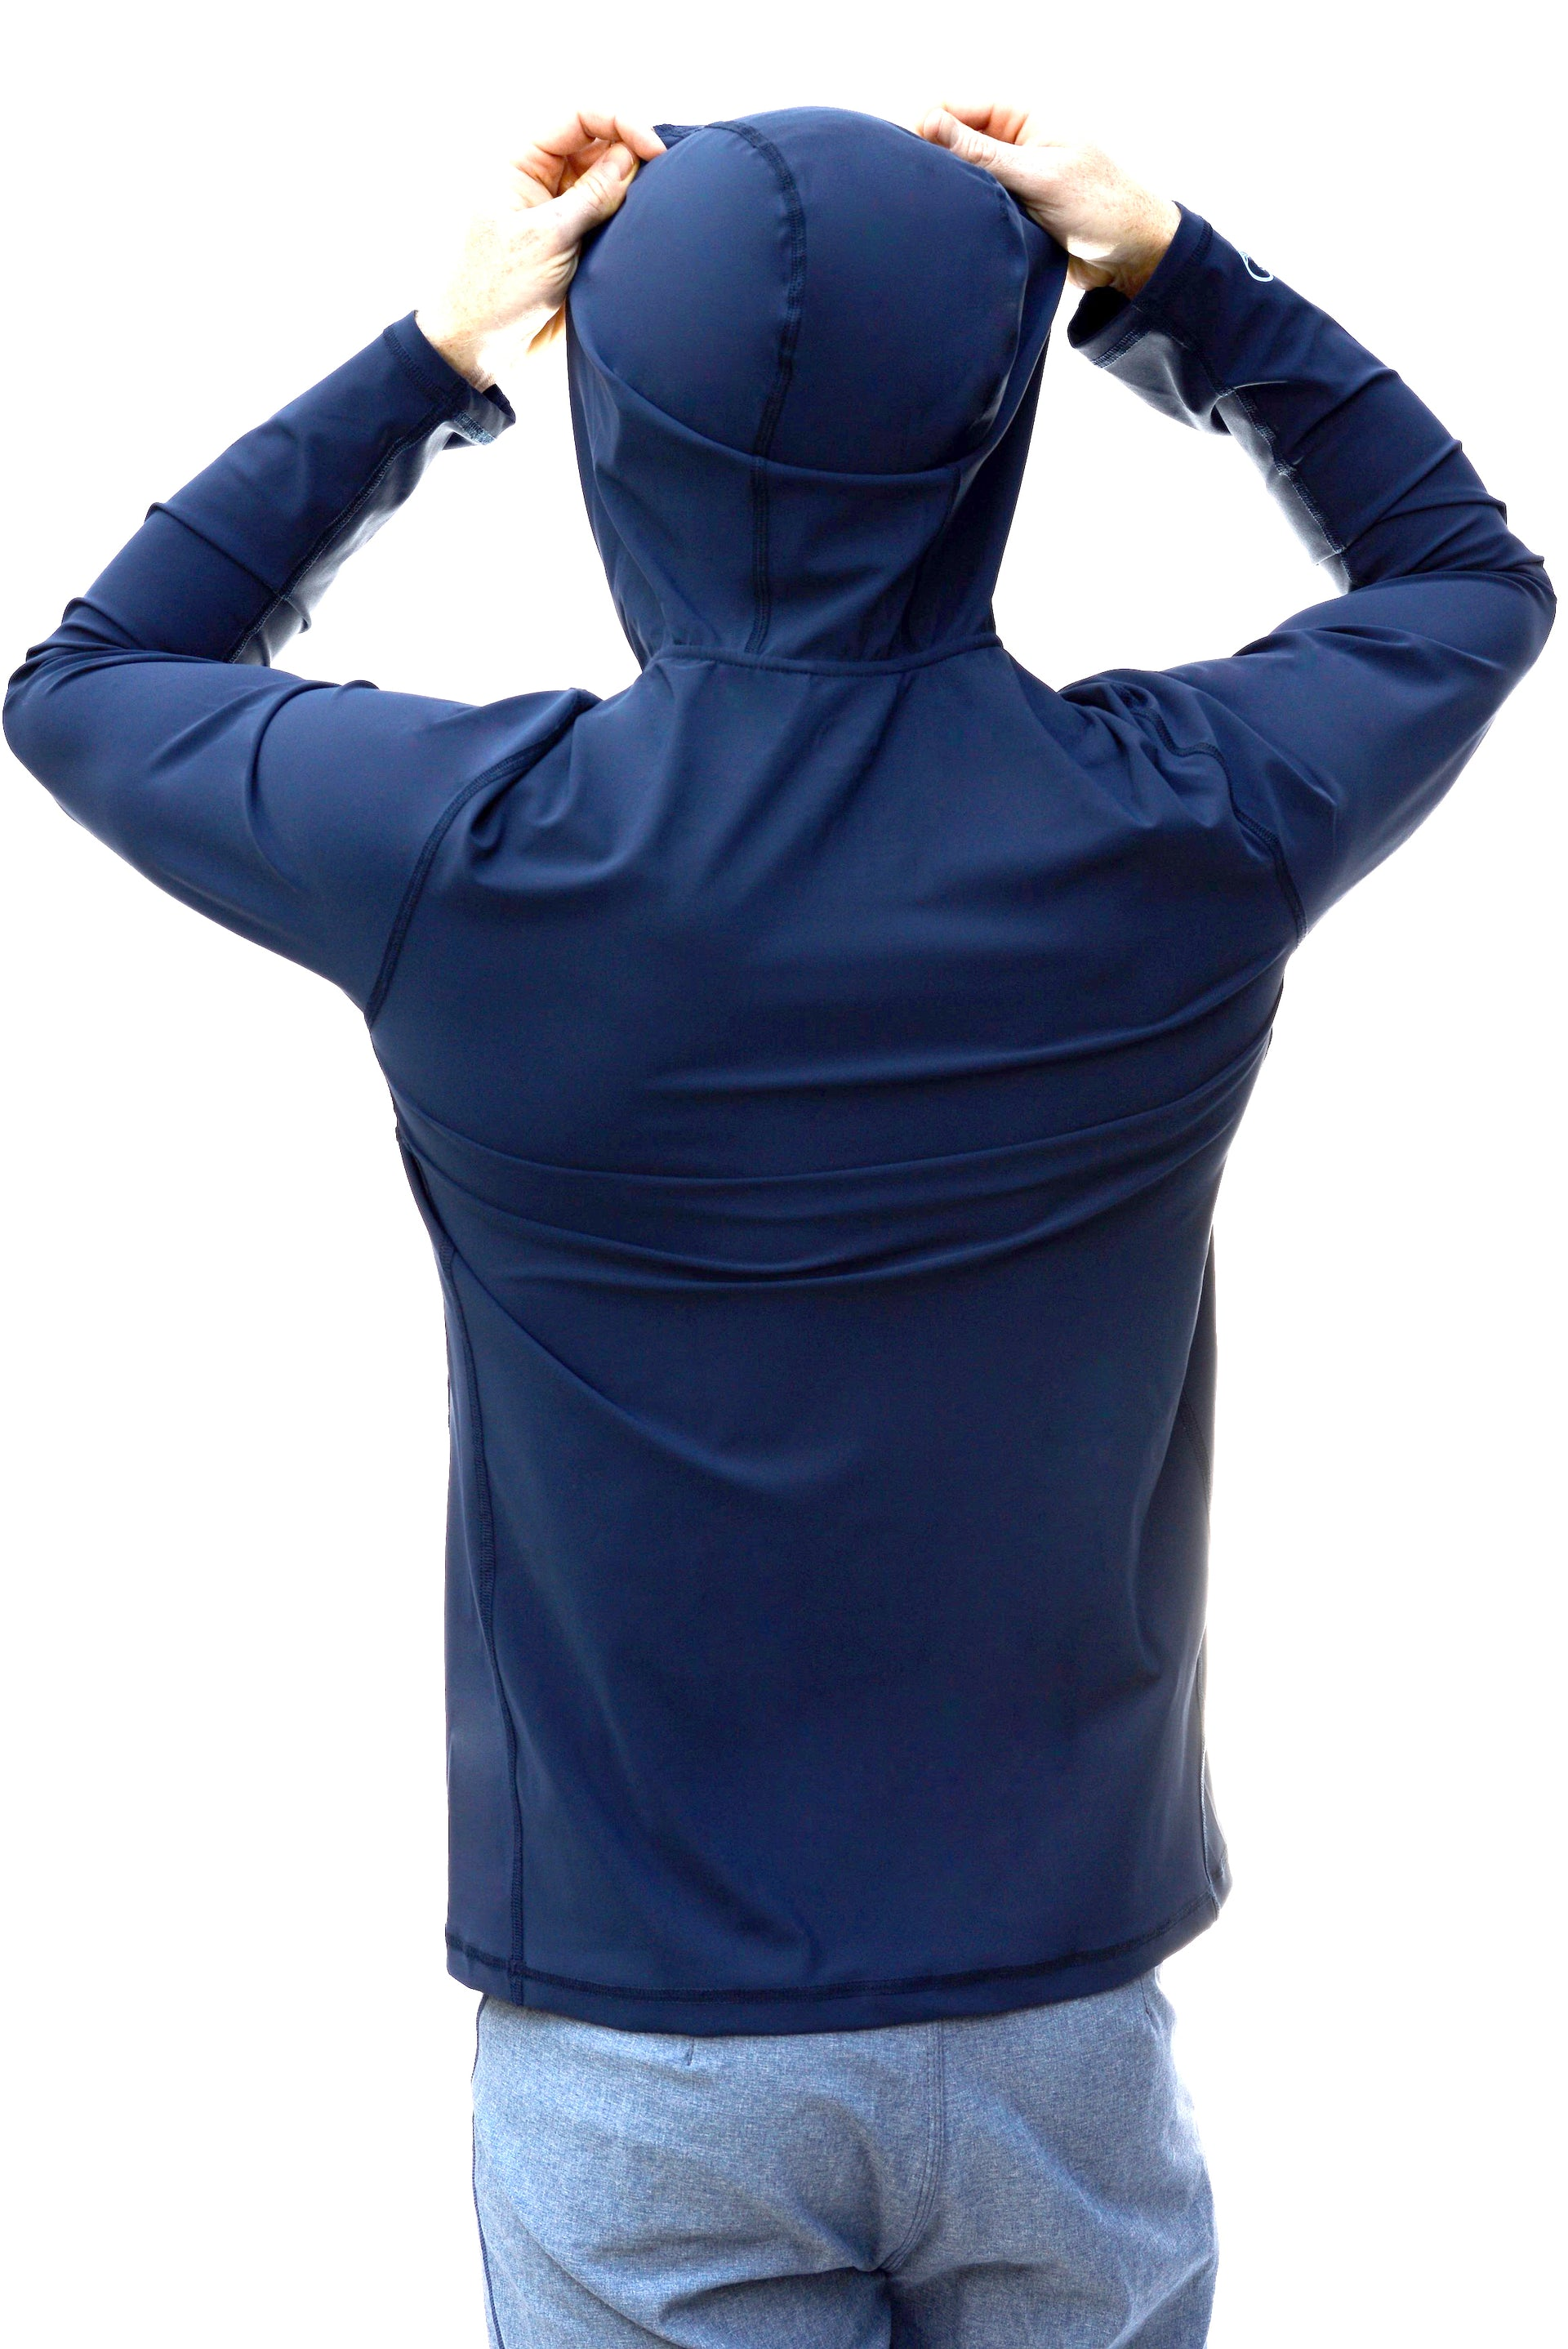 Solid Deep Sea - Mens Swim Shirt / Rash Guard with a Hood